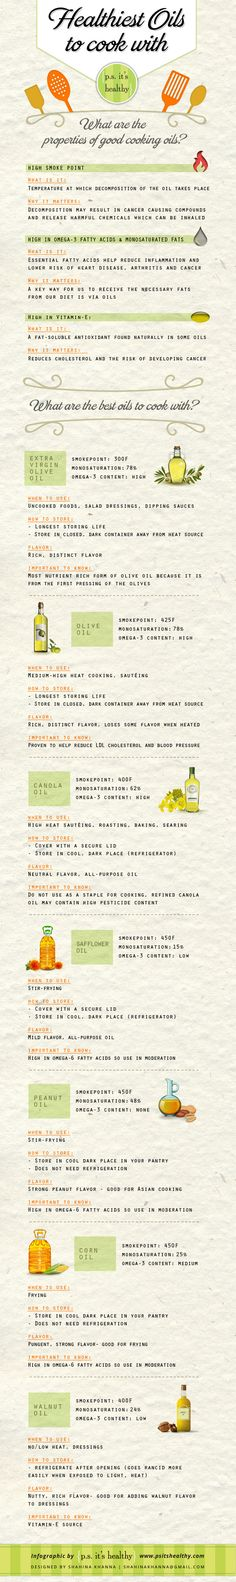 Healthiest Cooking Oils by psitshealthy #Infographic #Cooking_Oils #Health